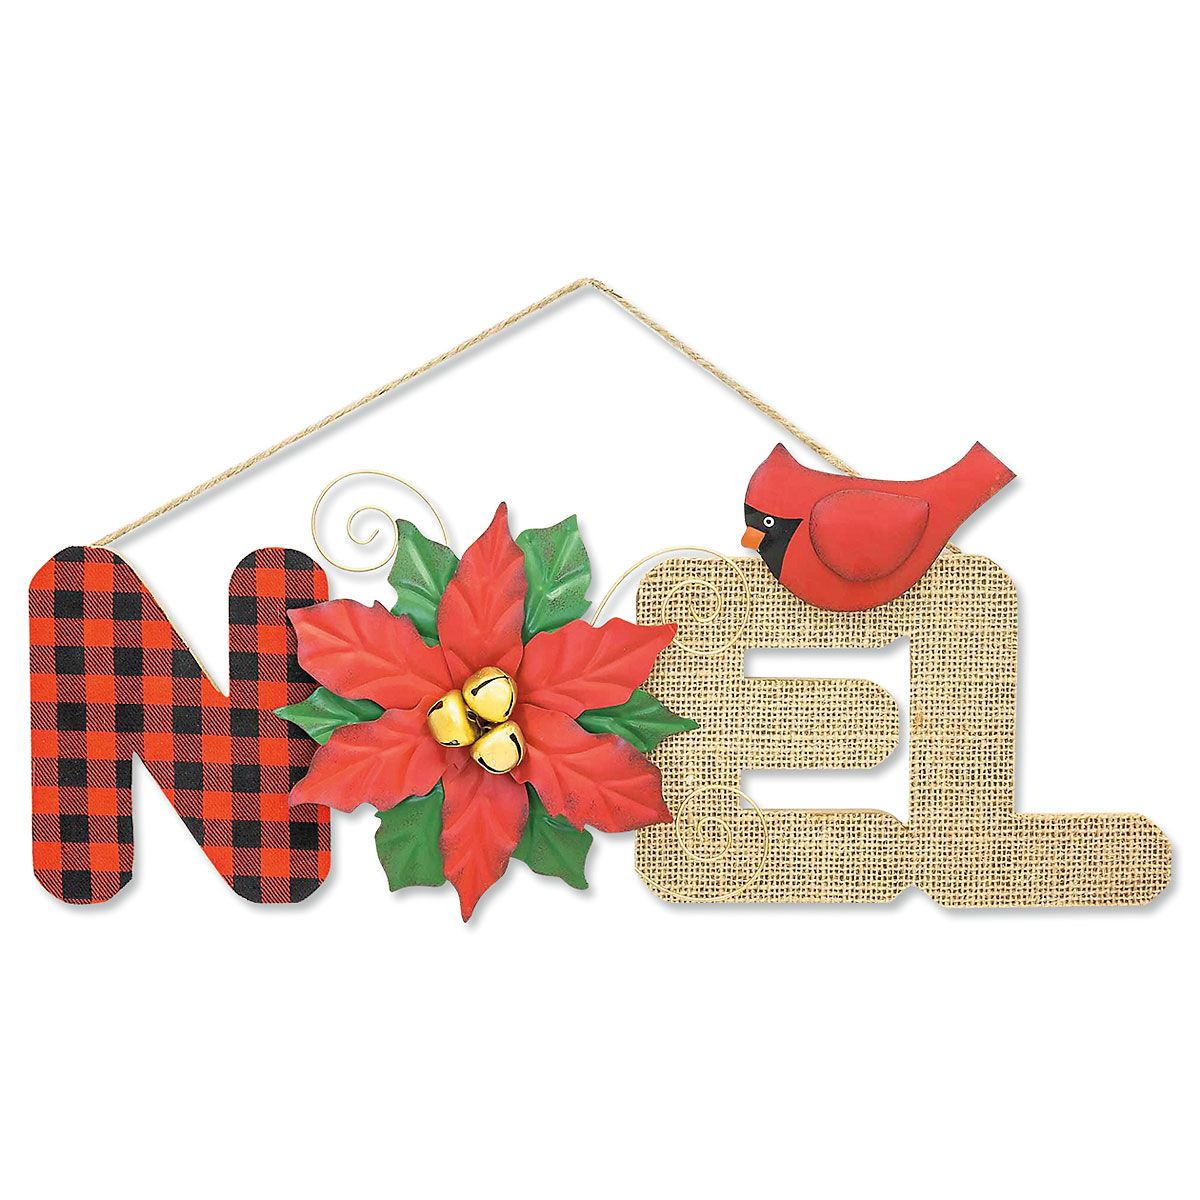 Noel Wall Decor